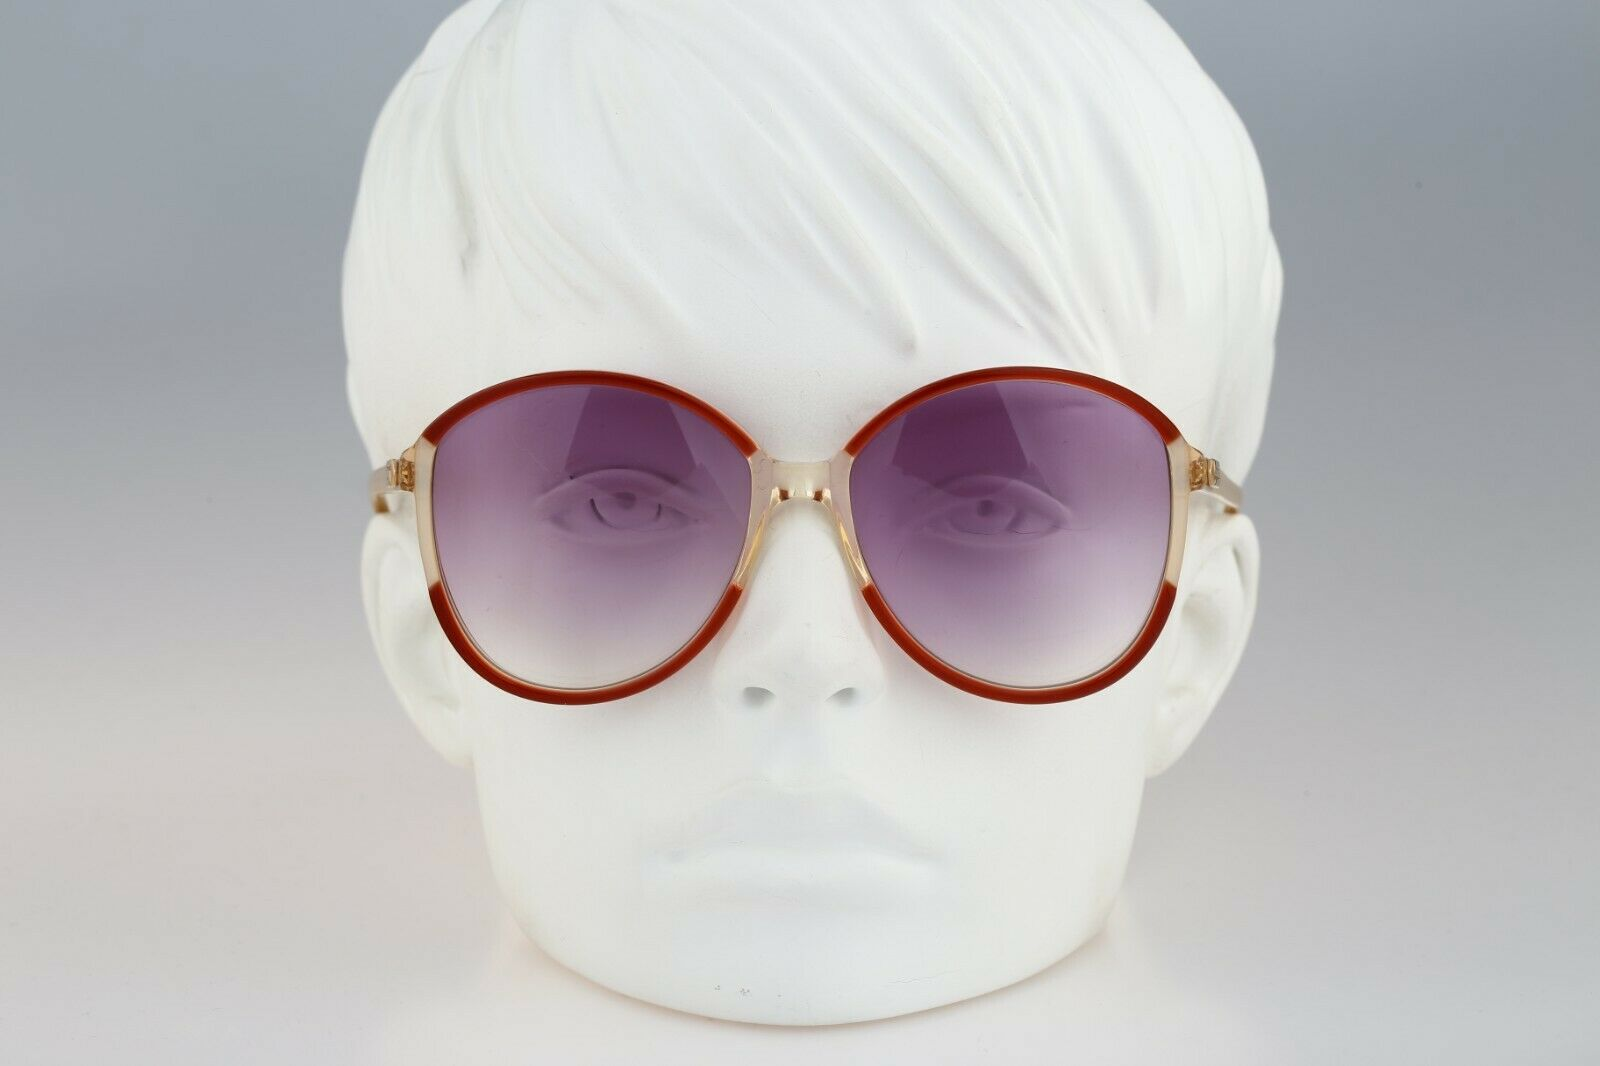 Silhouette M 1126 20 C 2713, Vintage 70s red & cl… - image 1